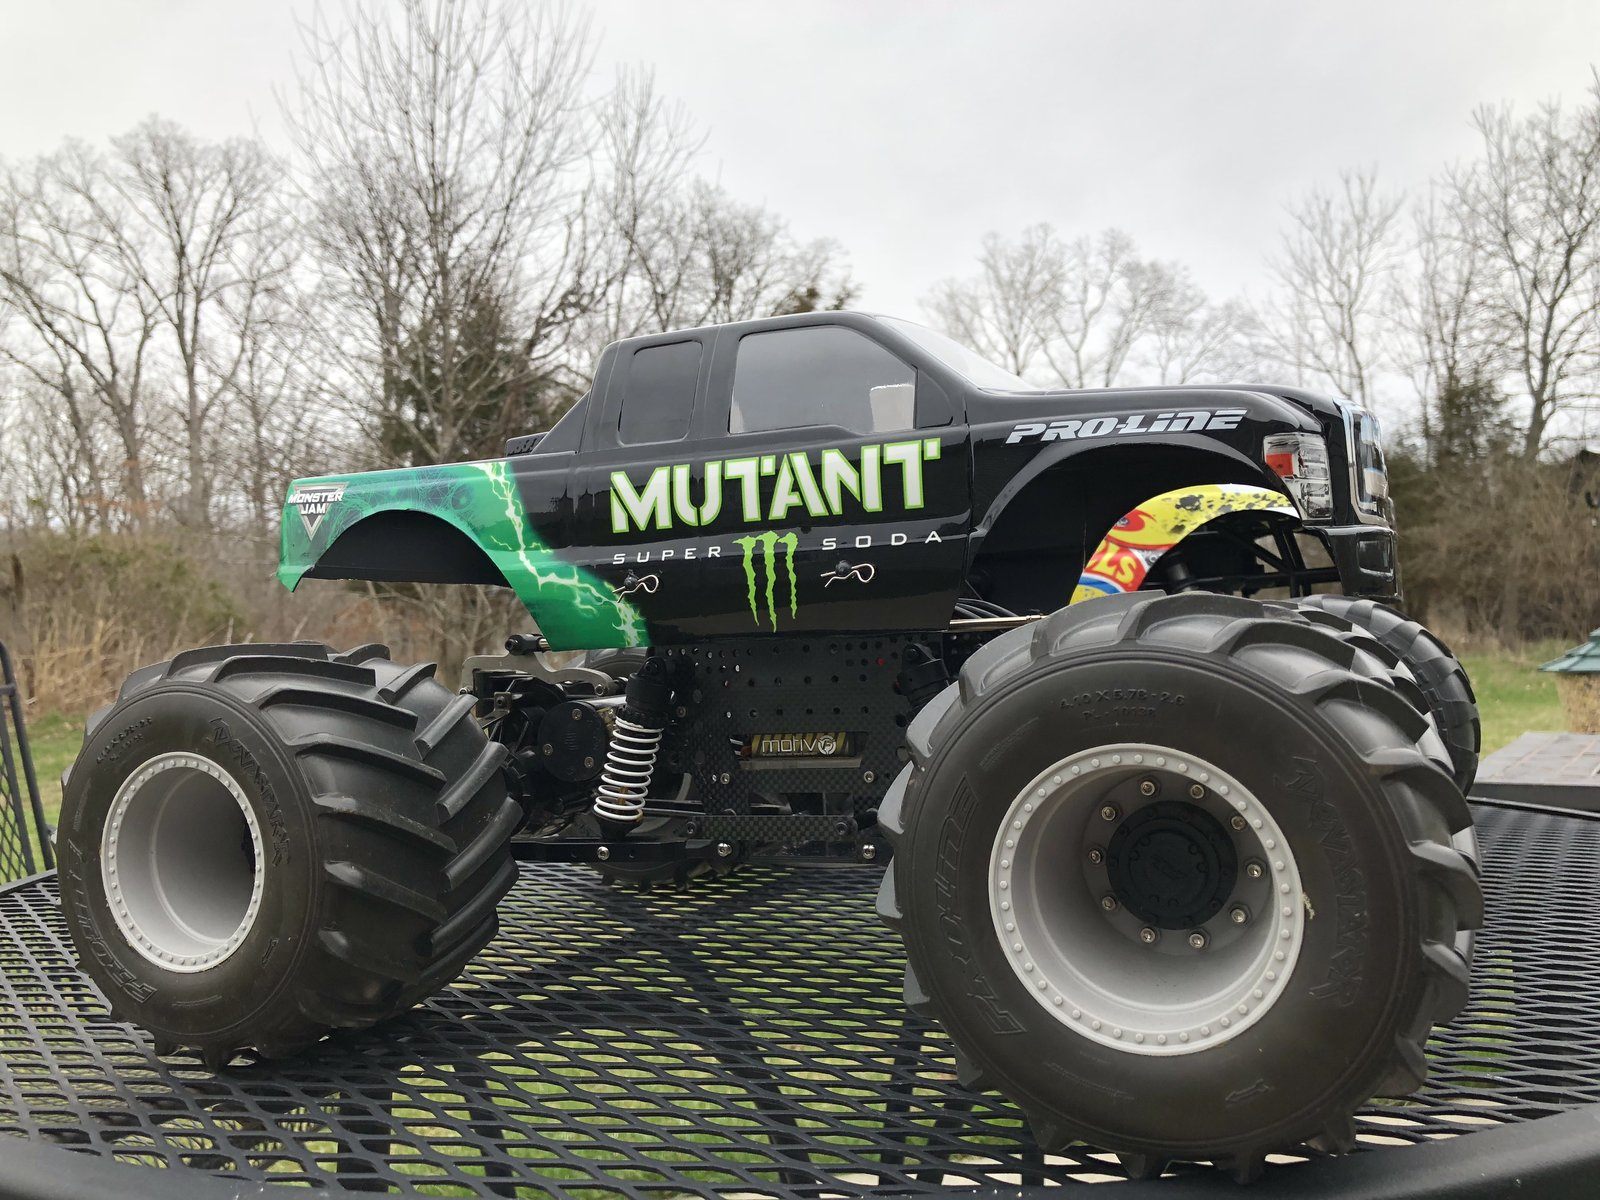 SMT10 - My first solid axle monster truck build | RC Talk Forum